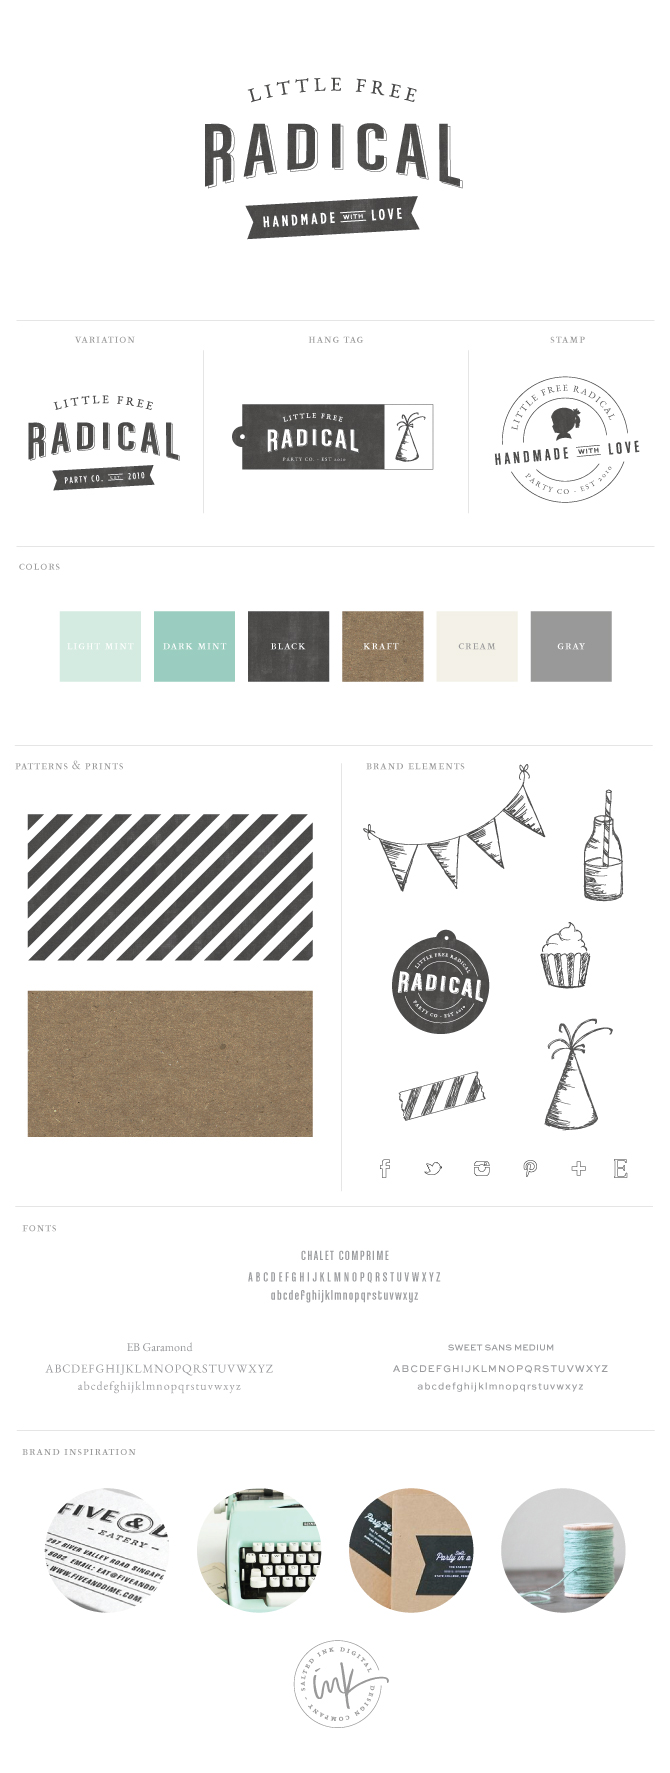 Little Free Radical Pattern Brand Guidelines Templates